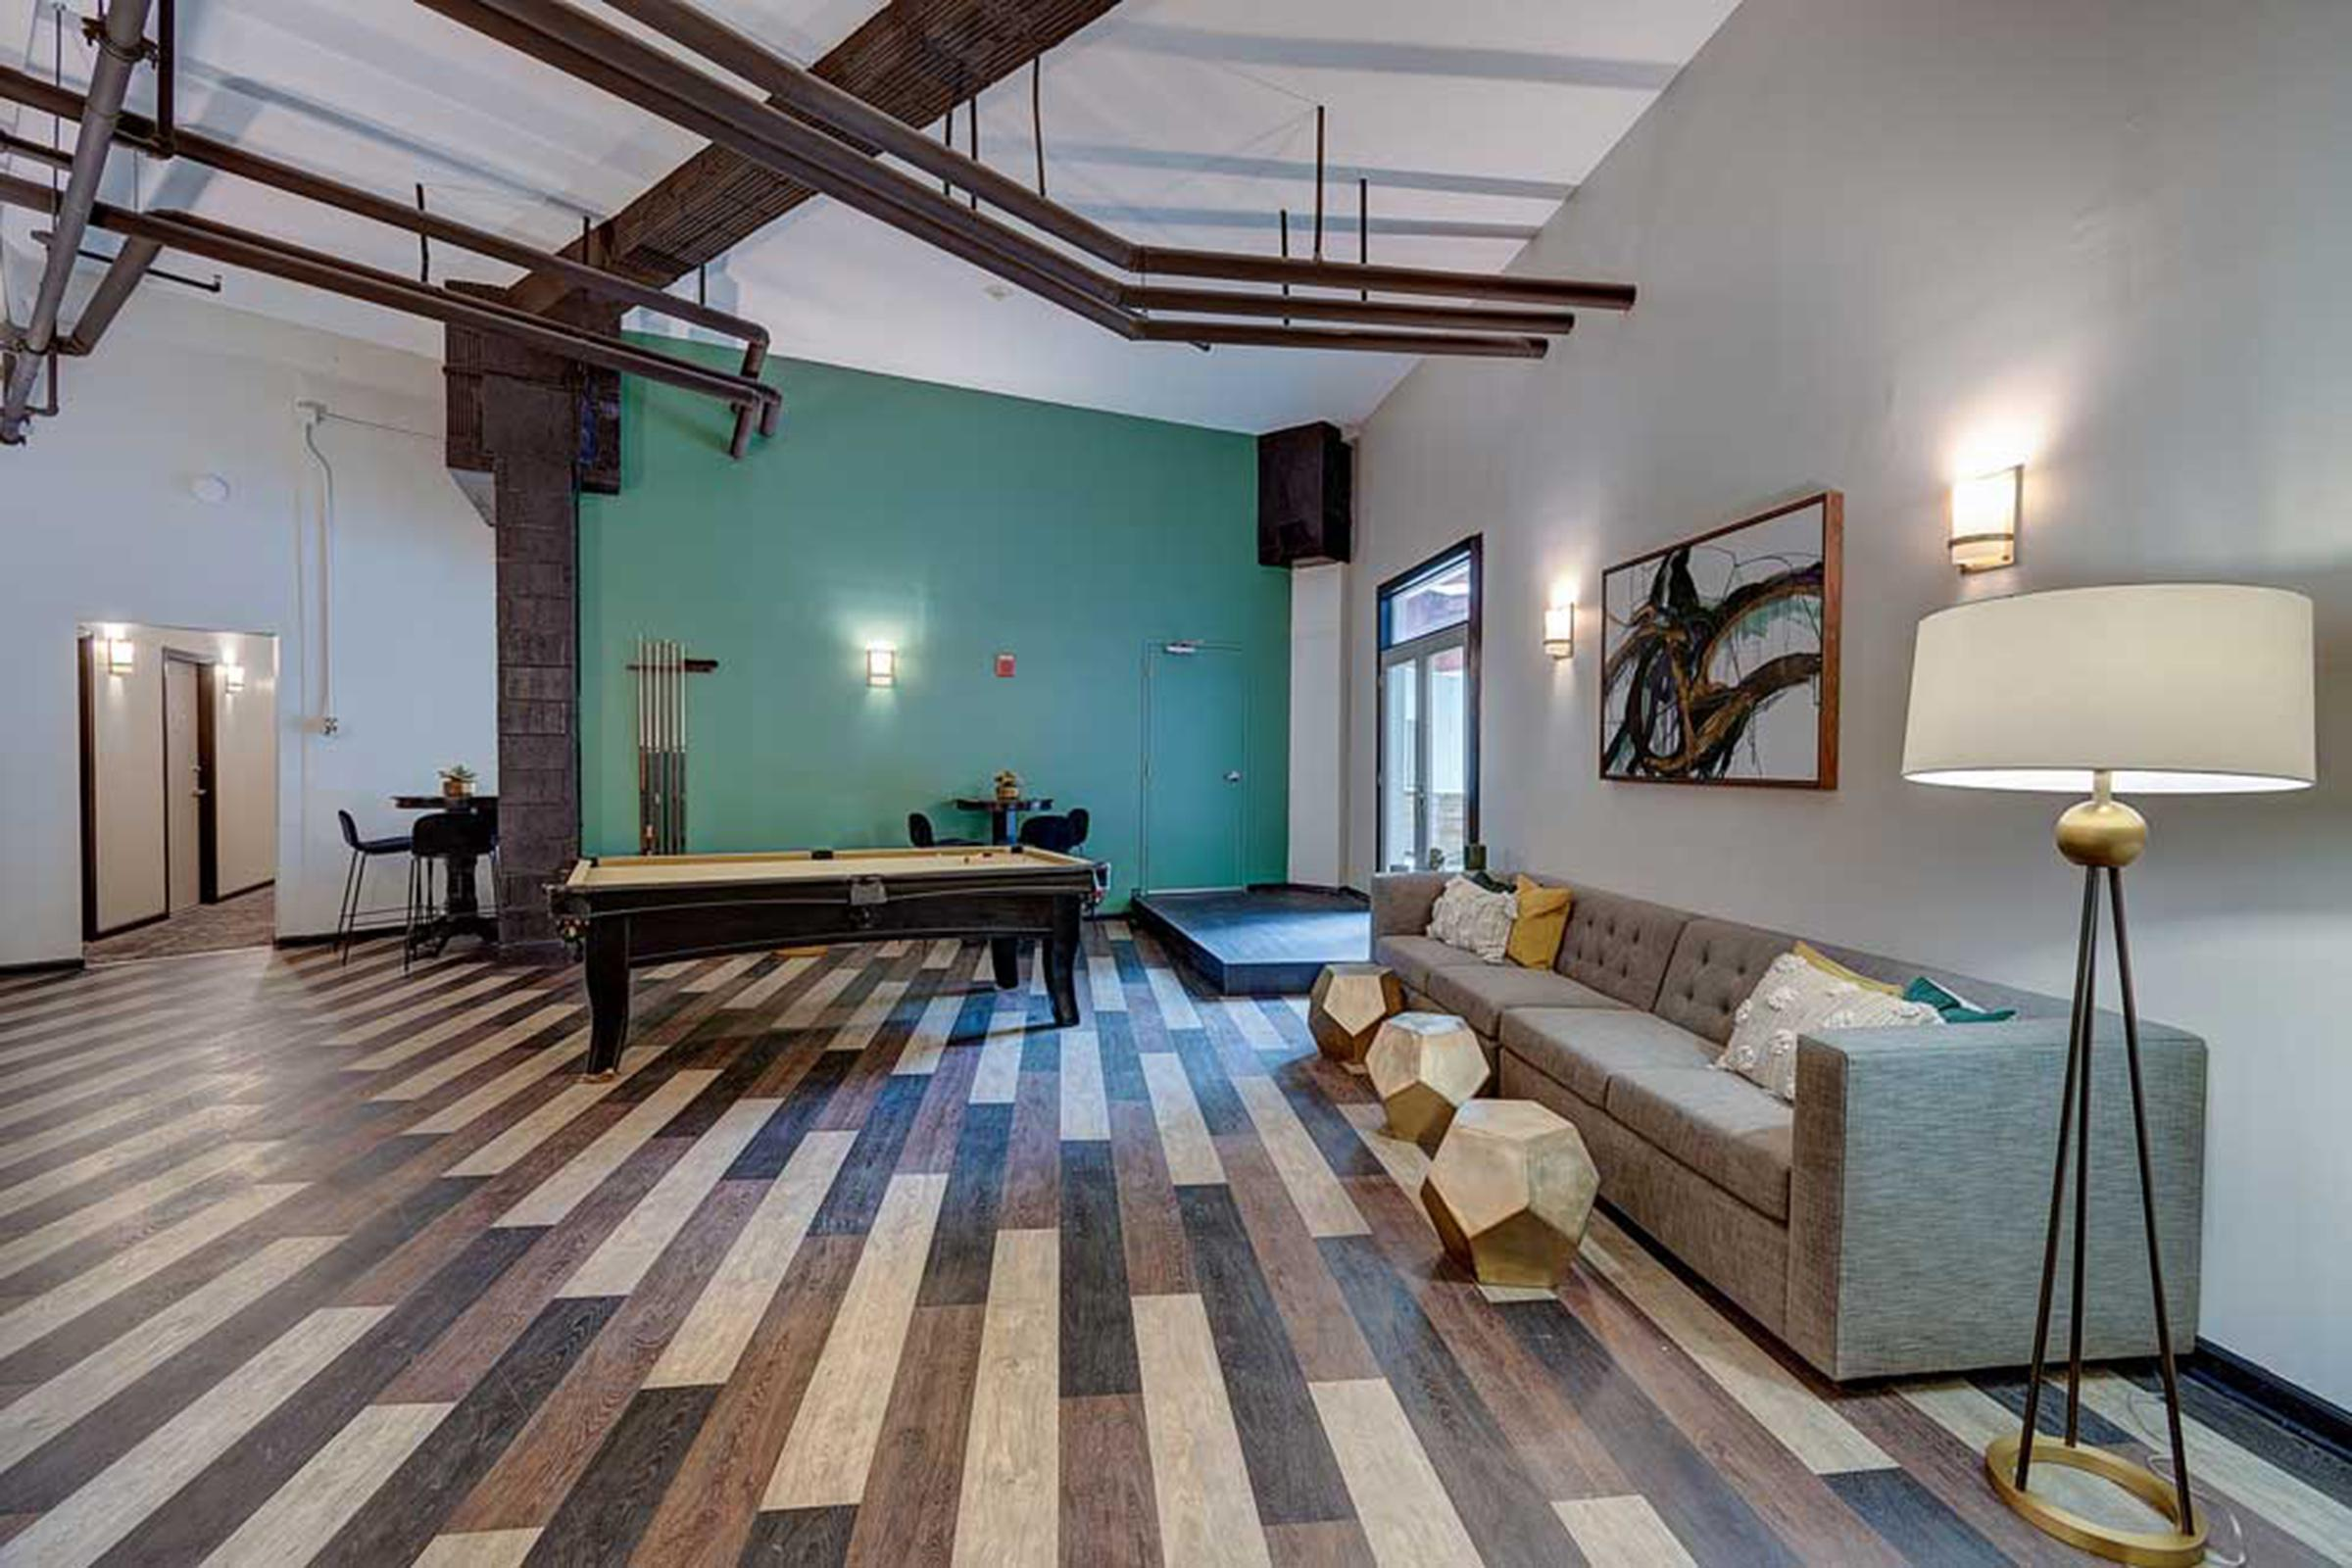 a view of a living room with a wooden floor